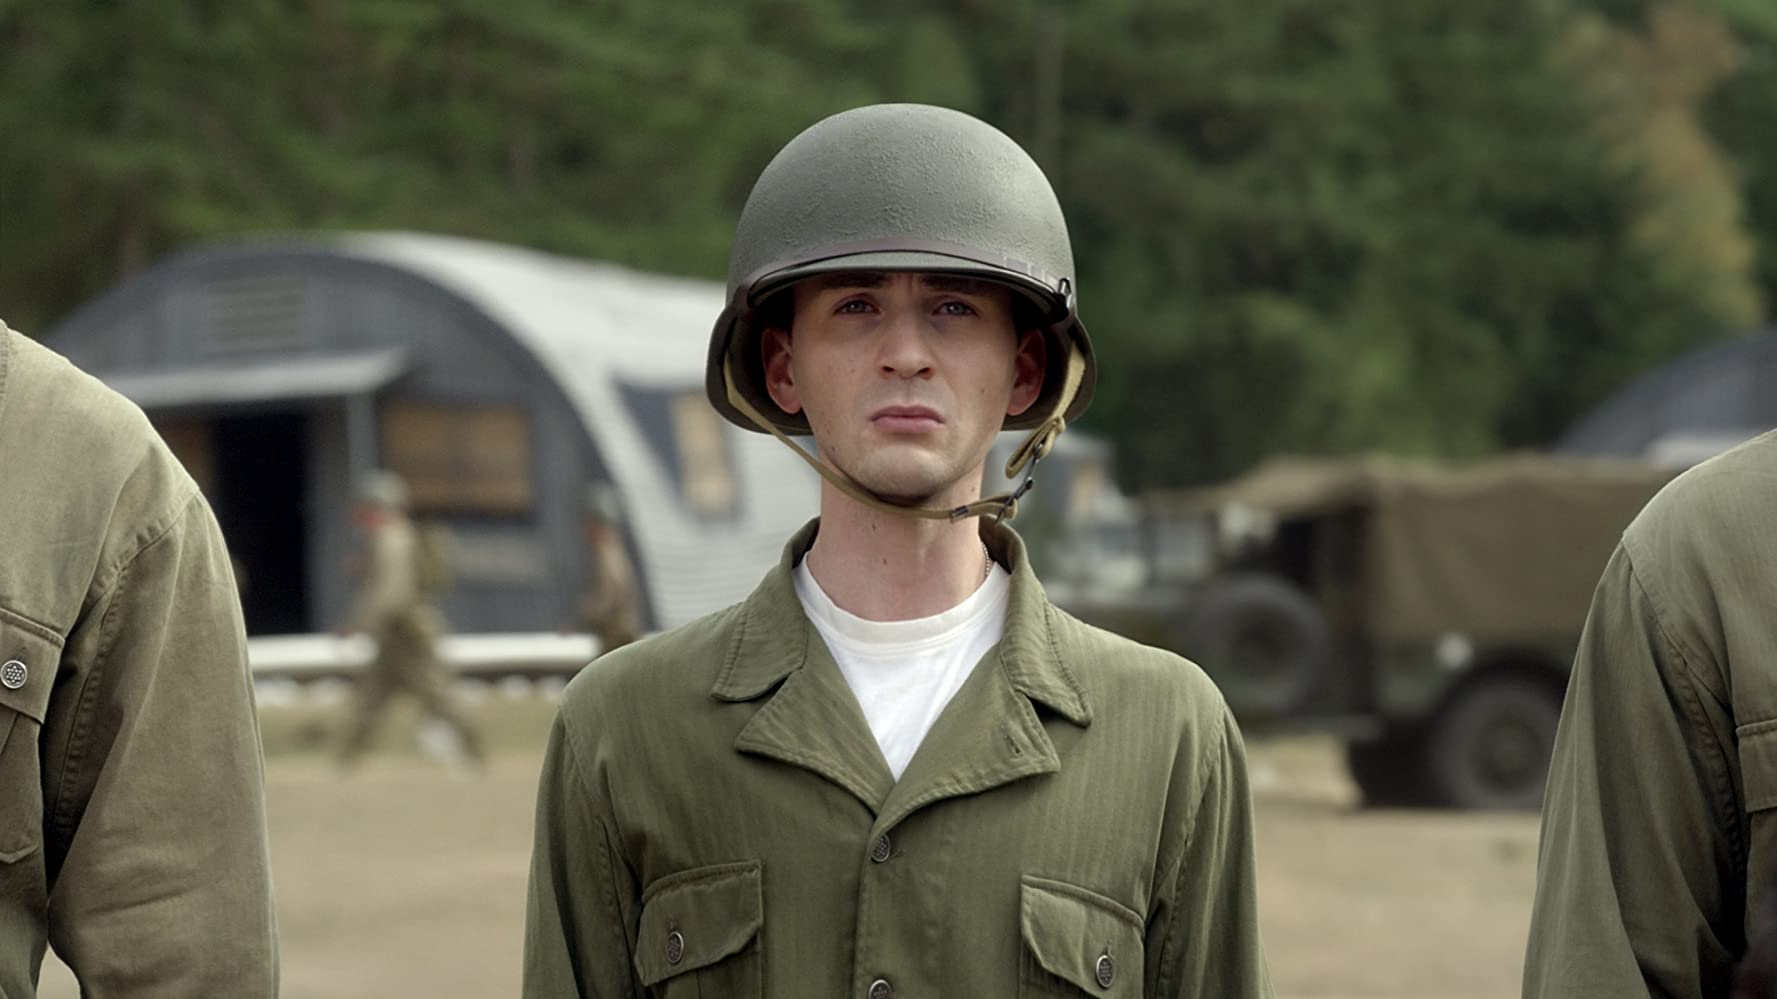 Chris Evans in Captain America The First Avenger 2011